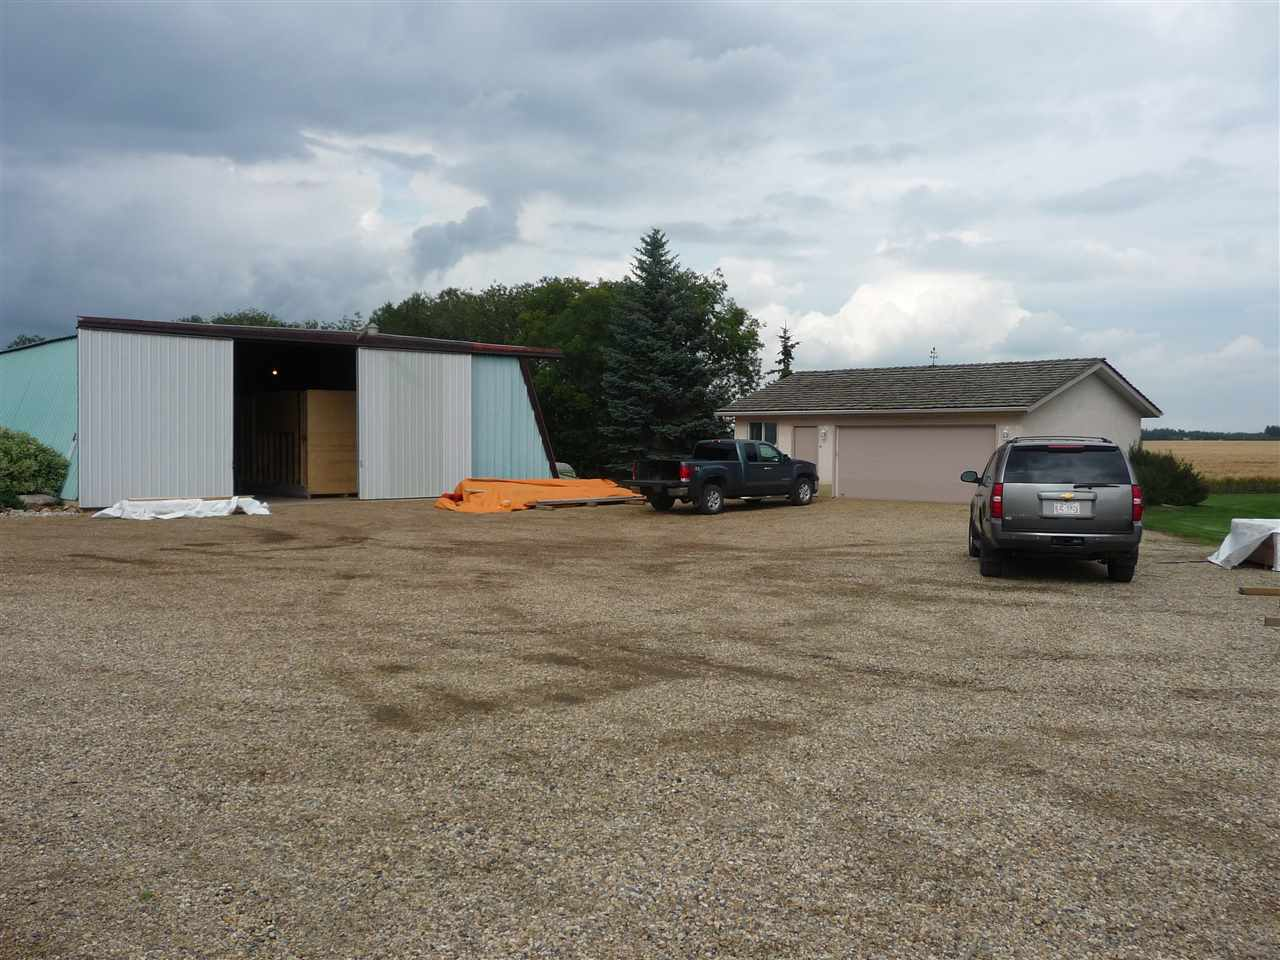 Photo 22: 54527 RGE RD 243: Rural Sturgeon County House for sale : MLS(r) # E4033494